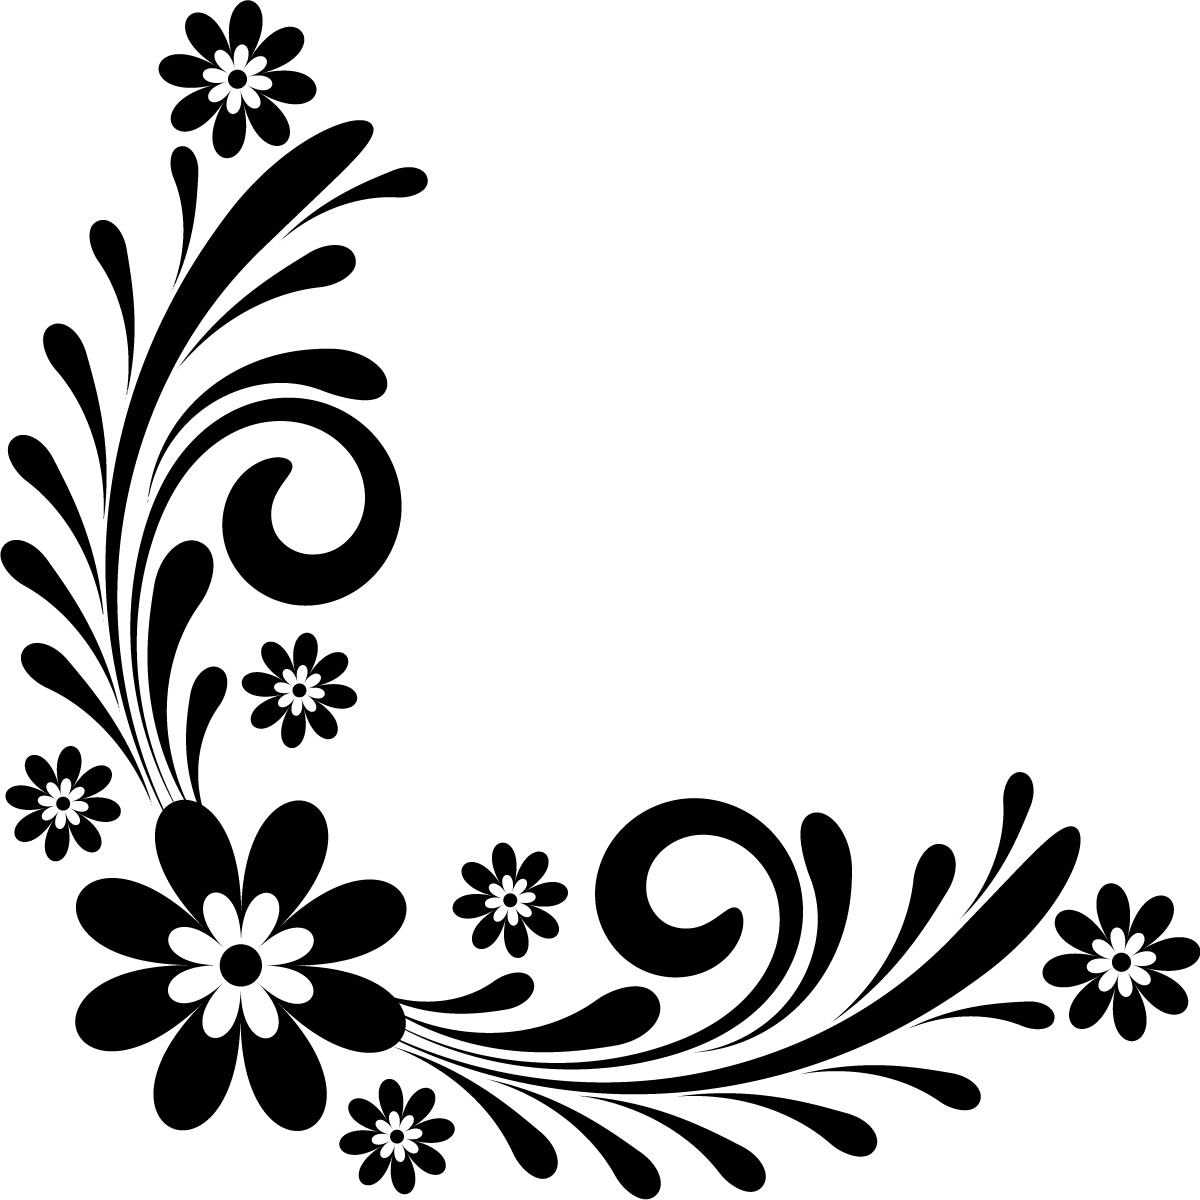 Line Art Corner Design : Flower line art corners clipart best